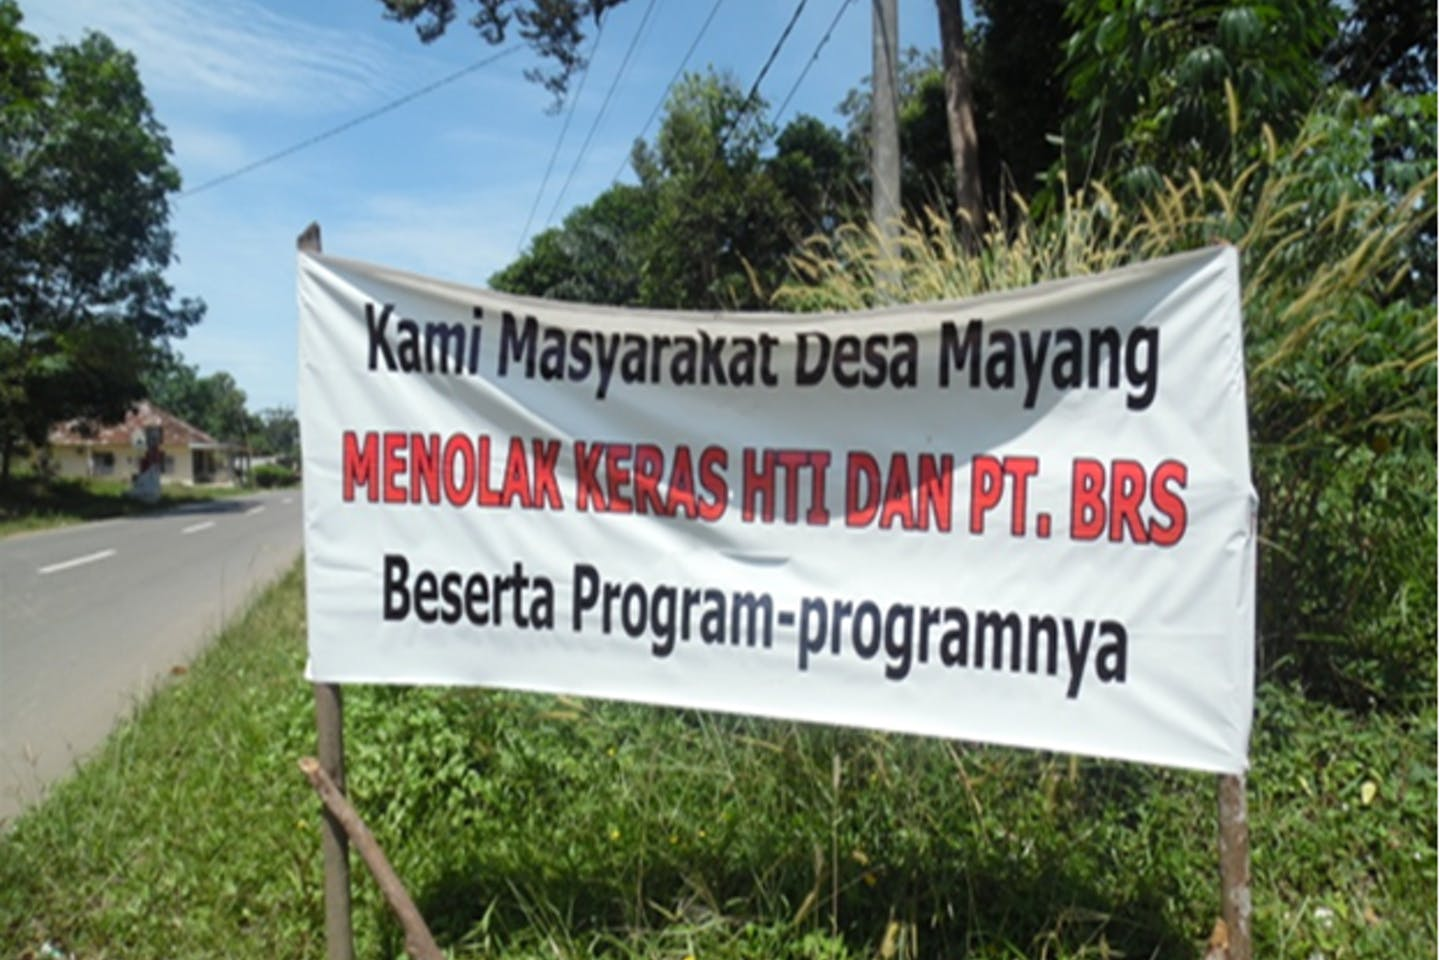 he reasons for the rejection include the absence of meaningful consultation about BRS's industrial plantation development plans and failute to request or get approval from these communities for the development of an Industrial Timber Estate on community owned land. The socialization arranged by BRS in August 2015 in Air Gantang village involved intimidation by the national police and army.